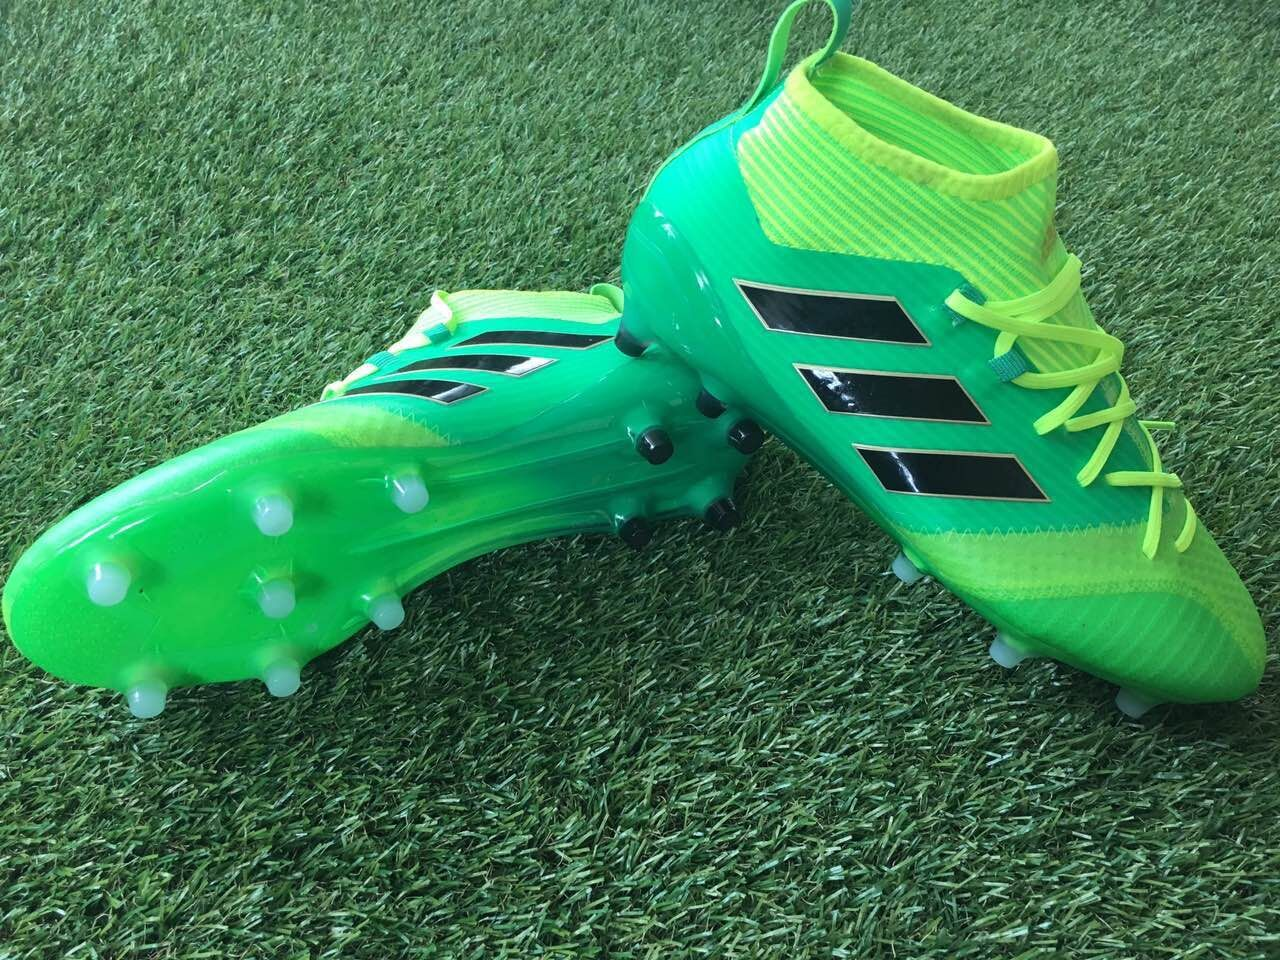 low priced 17872 85daa 2017 Adidas ACE 17 , Solar Green Black Core Yellow Adidas ACE 17.1  Primeknit FG Boots